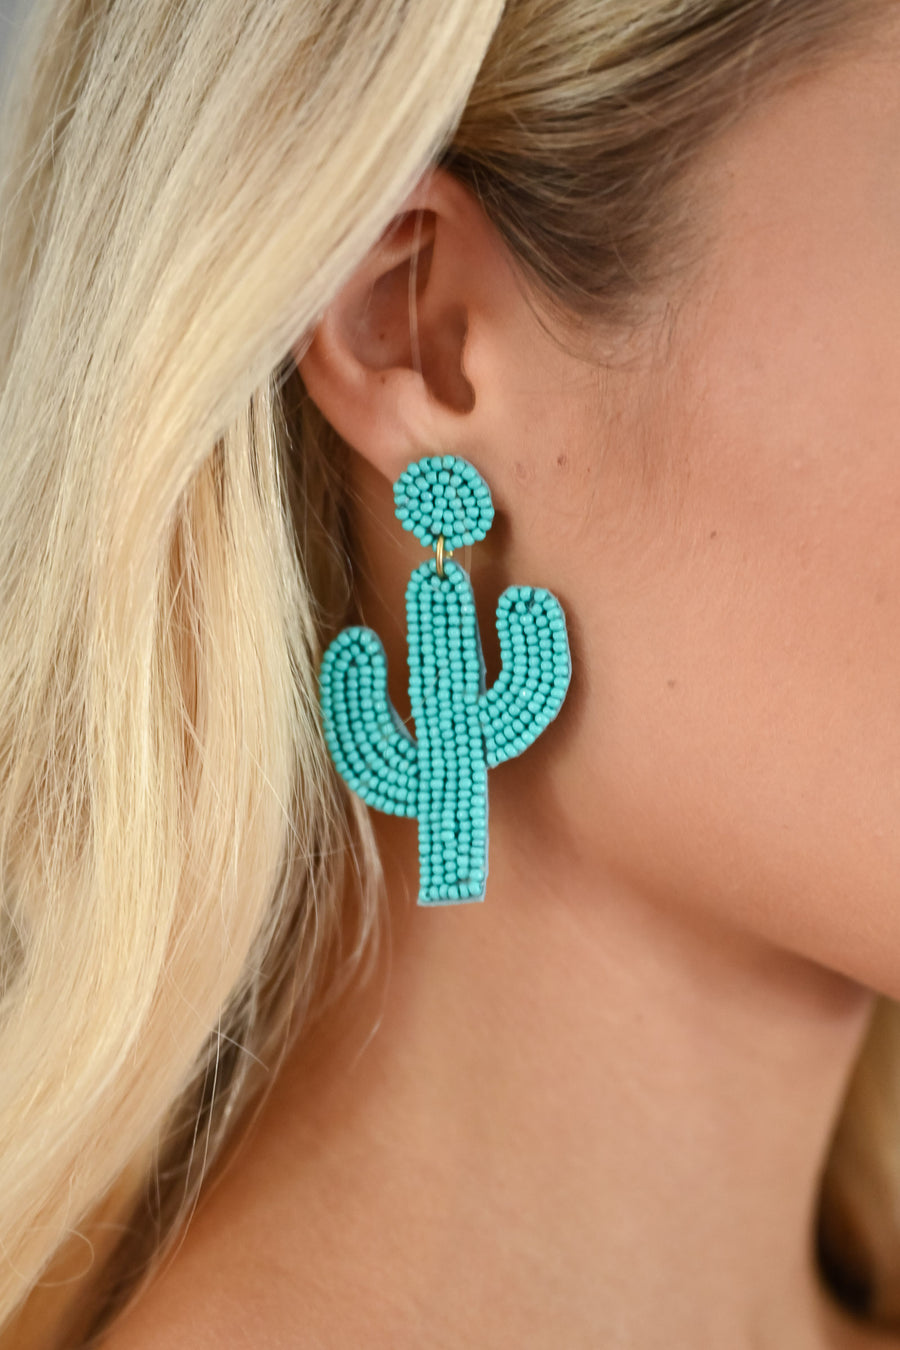 Looking Sharp Cactus Earrings - Turquoise womens trendy colorful beaded cactus earrings closet candy side